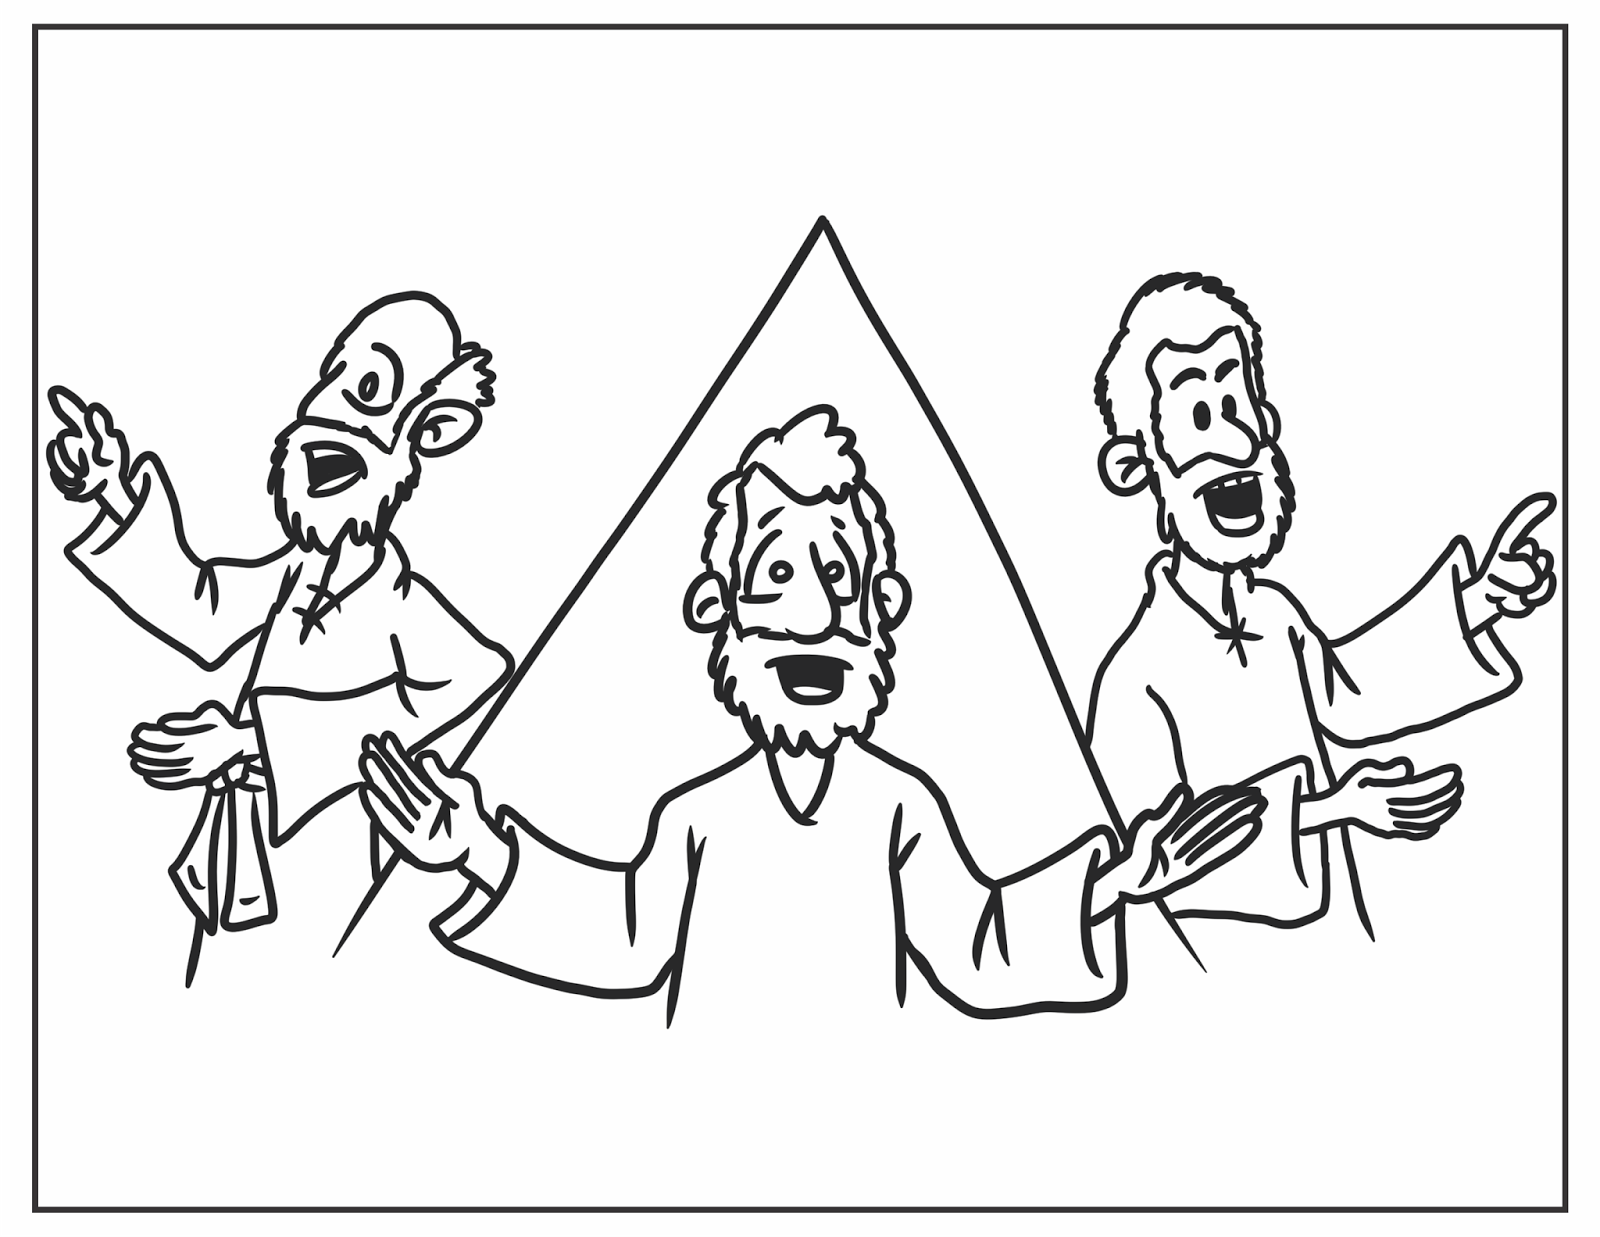 Matts sketch pad i have been creating illustrations to contribute to a curriculum package for use in missions and ministry here are some of that i have done or reformatted fandeluxe Gallery